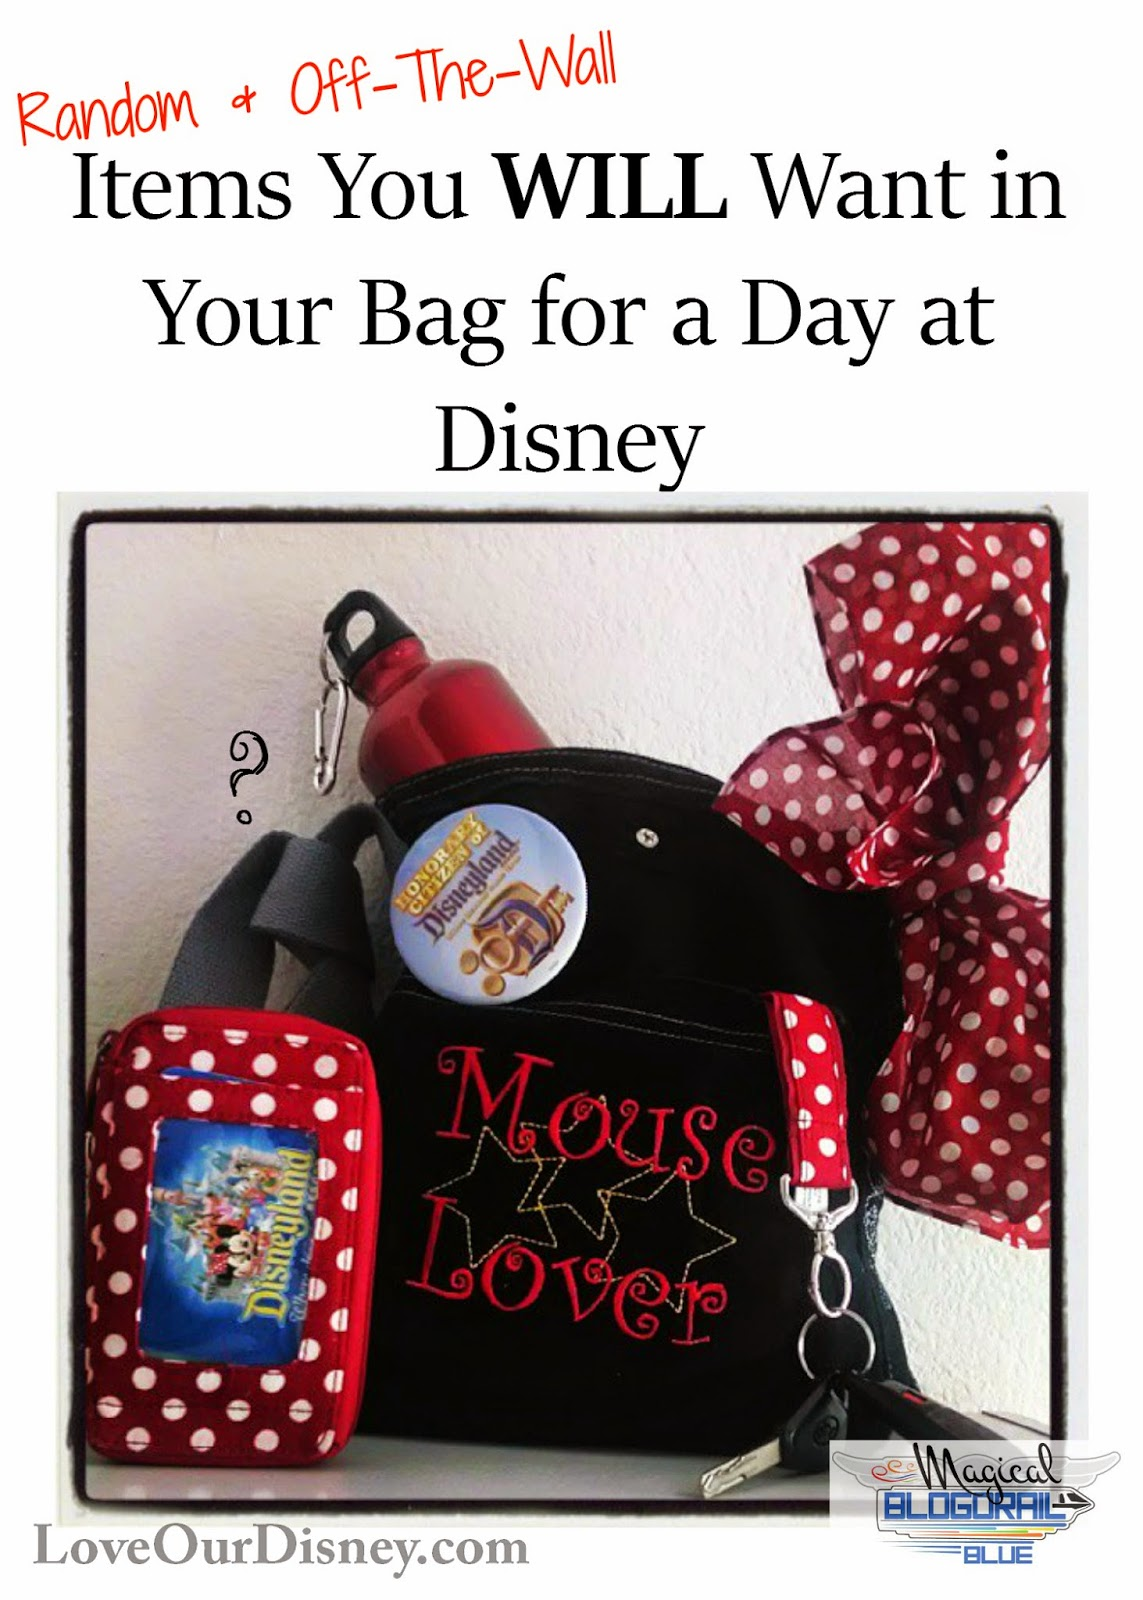 What should you pack in your purse/bag for Disney? These random items may save your magical vacation. LoveOurDisney.com